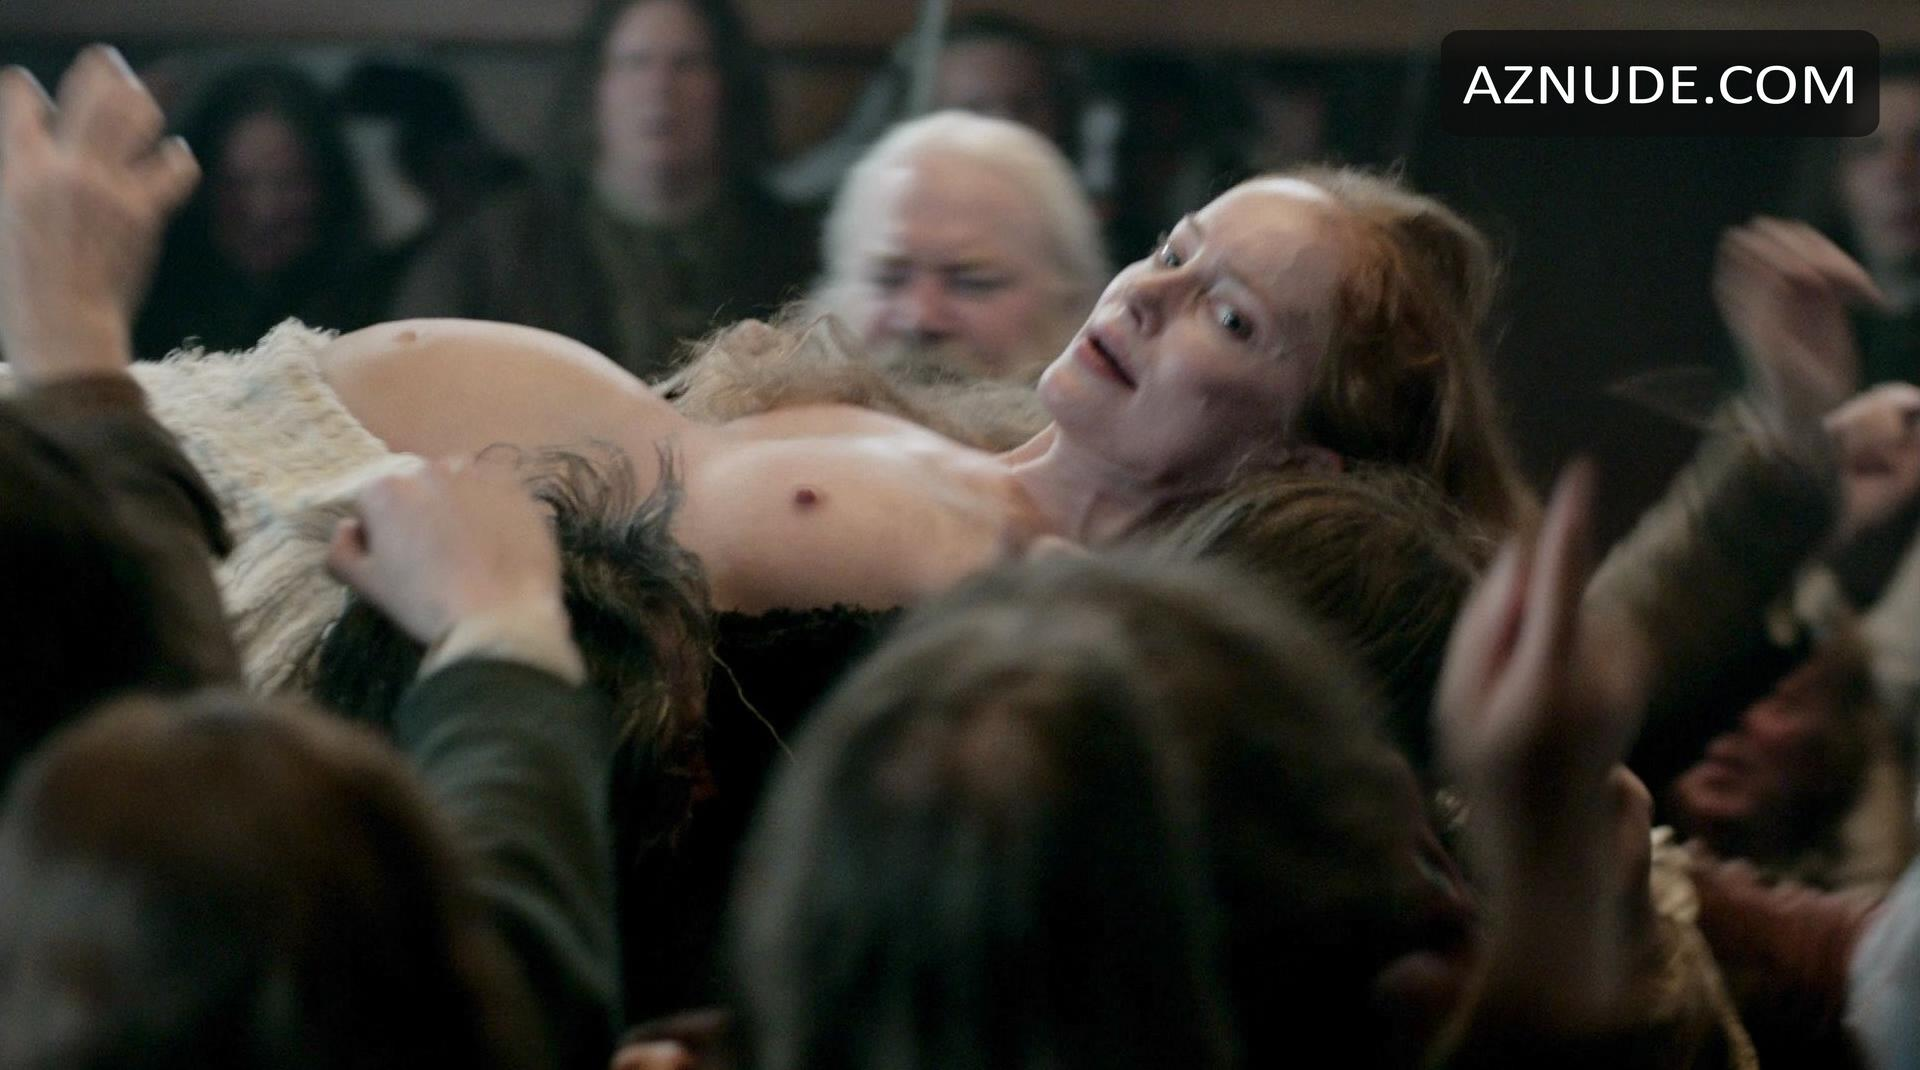 Caitriona balfe and lotte verbeek nude outlander s01e10 Part 5 6